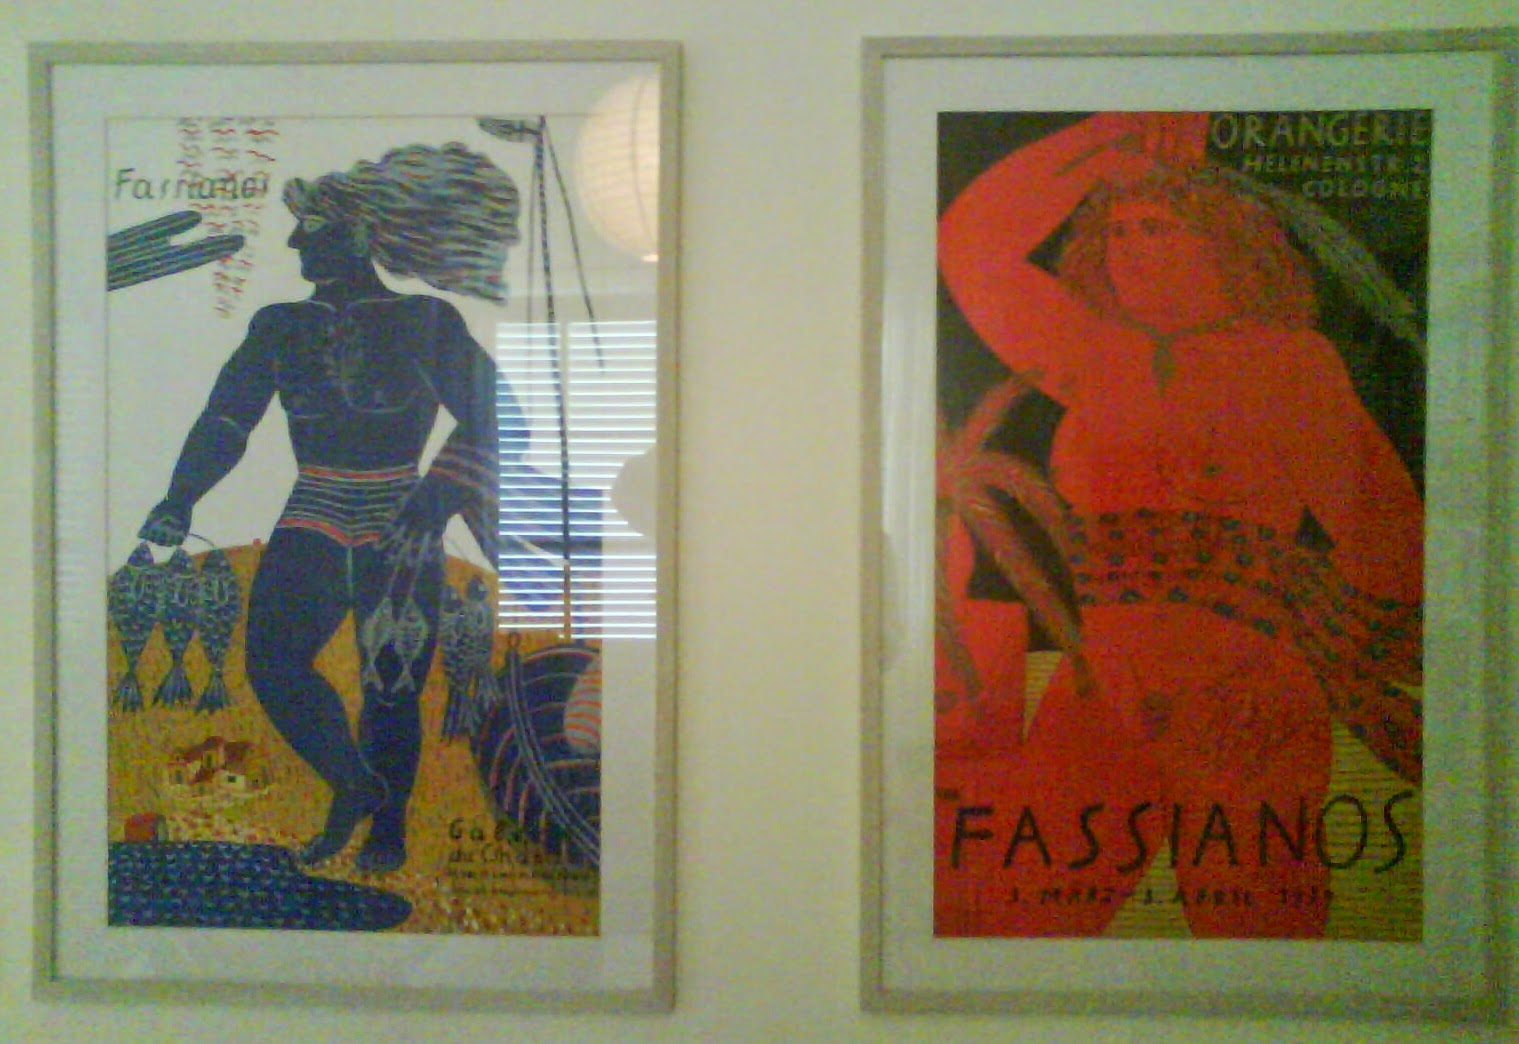 Fassianos posters